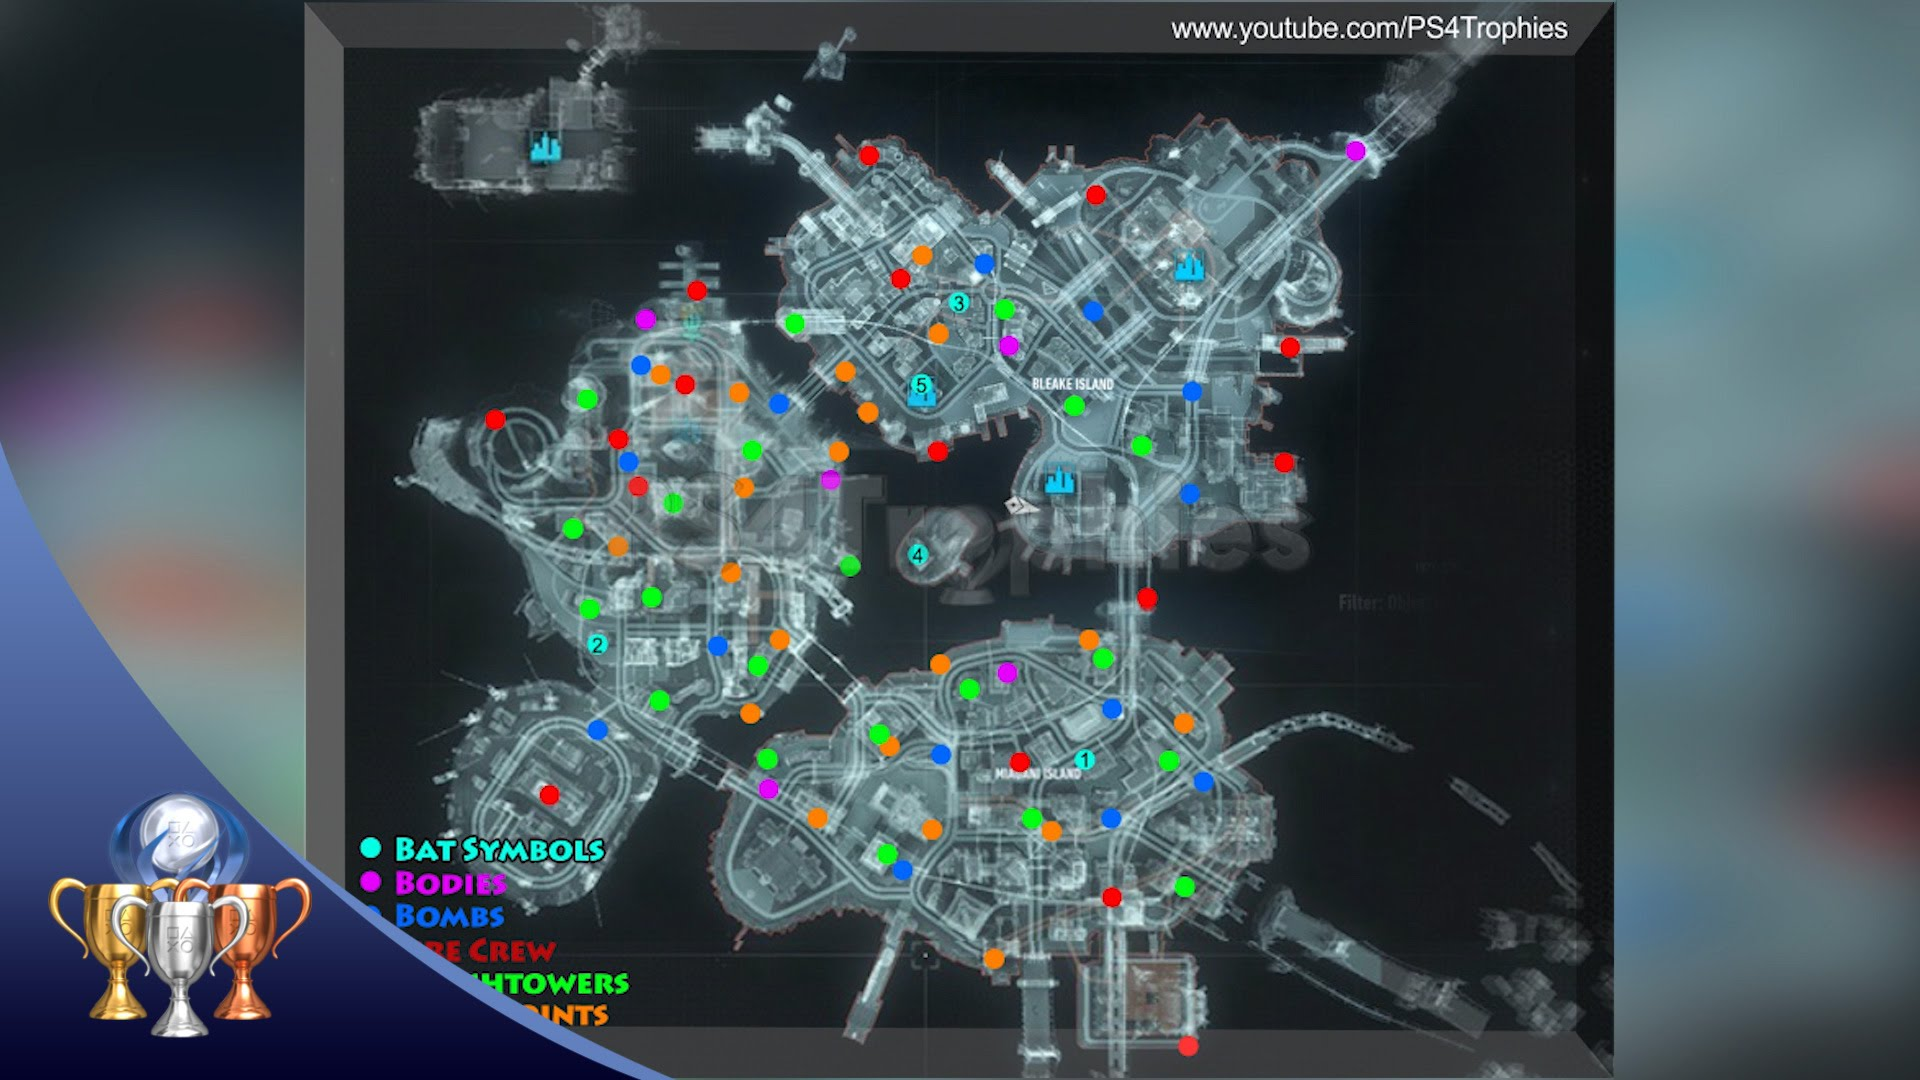 Batman Arkham Knight Map Batman Arkham Knight Map – Symbols, Mutilated Bodies, Bombs, Fire